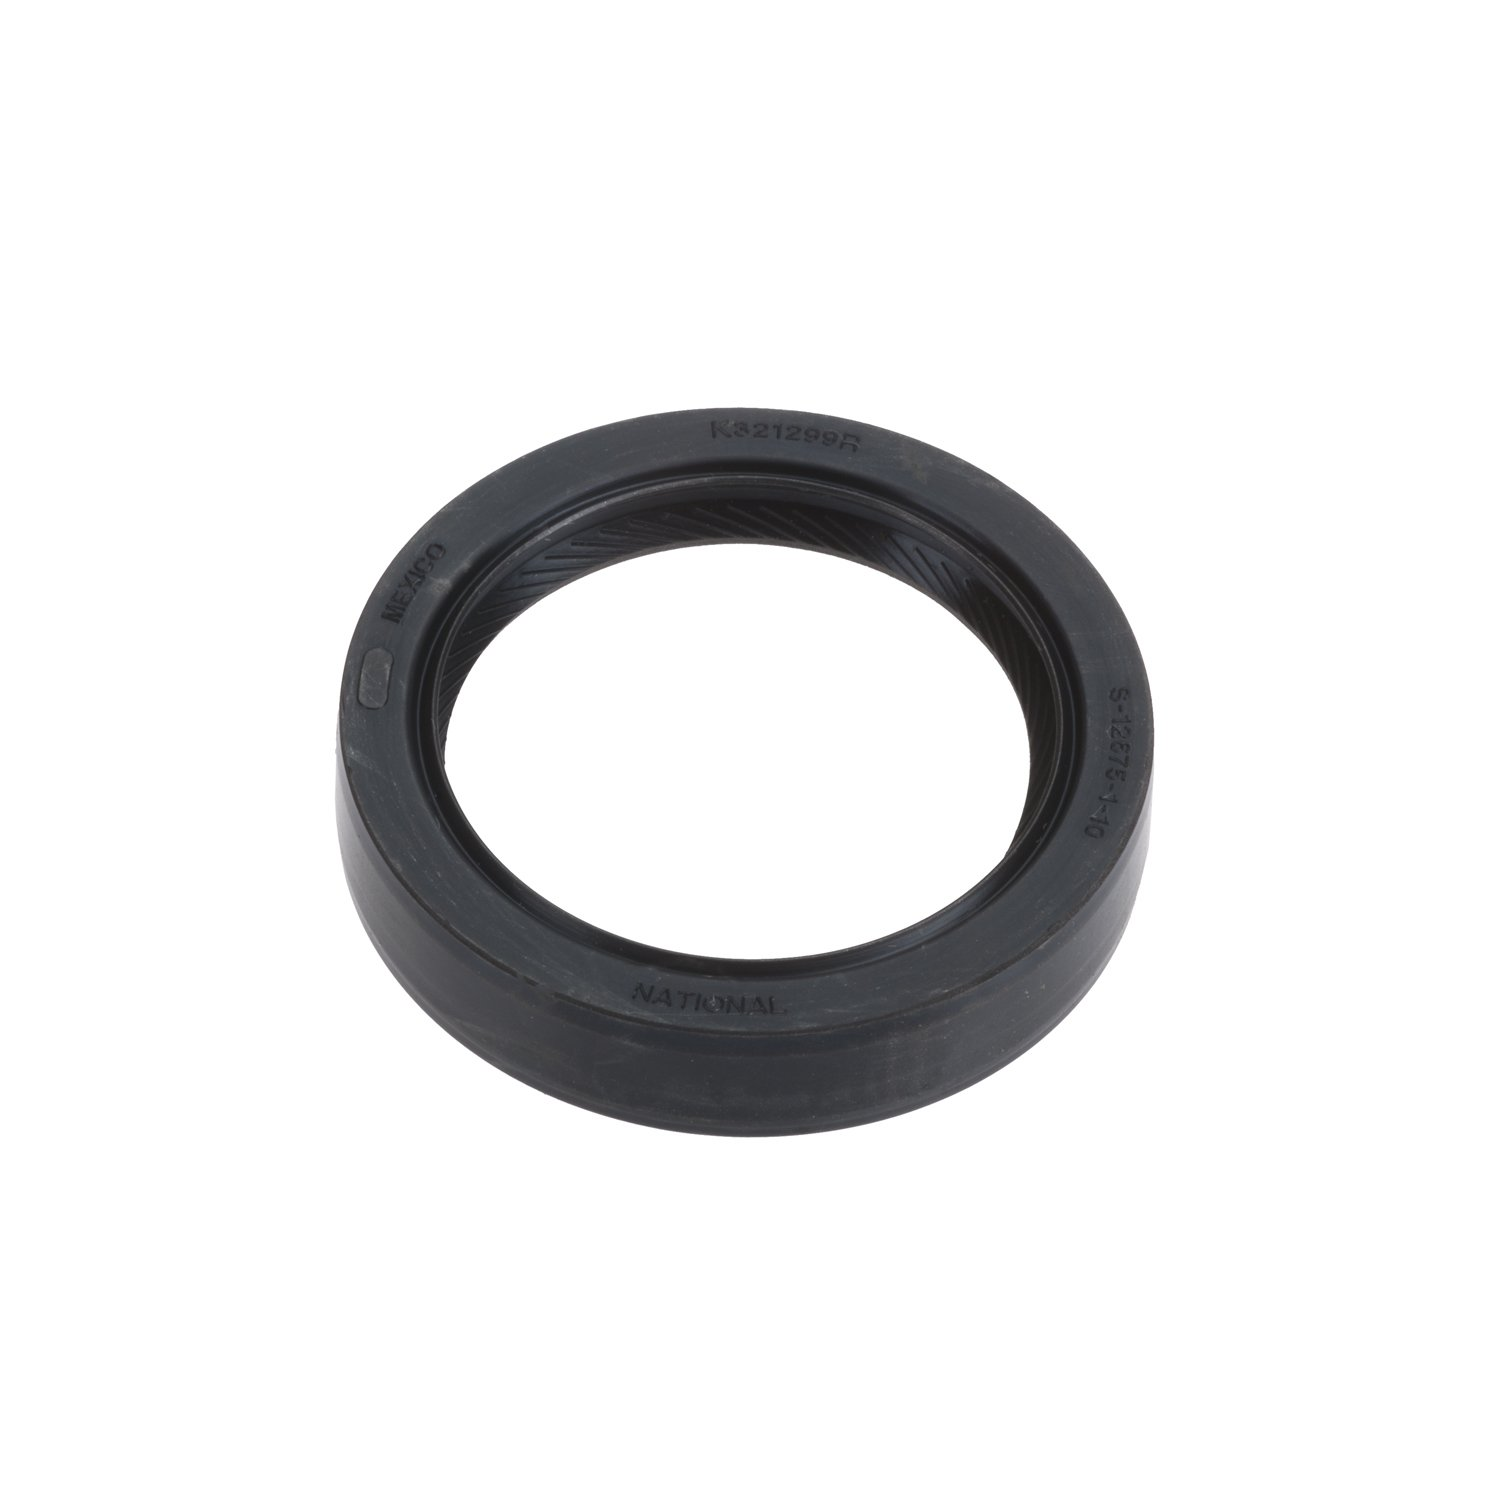 National 223800 Oil Seal by National